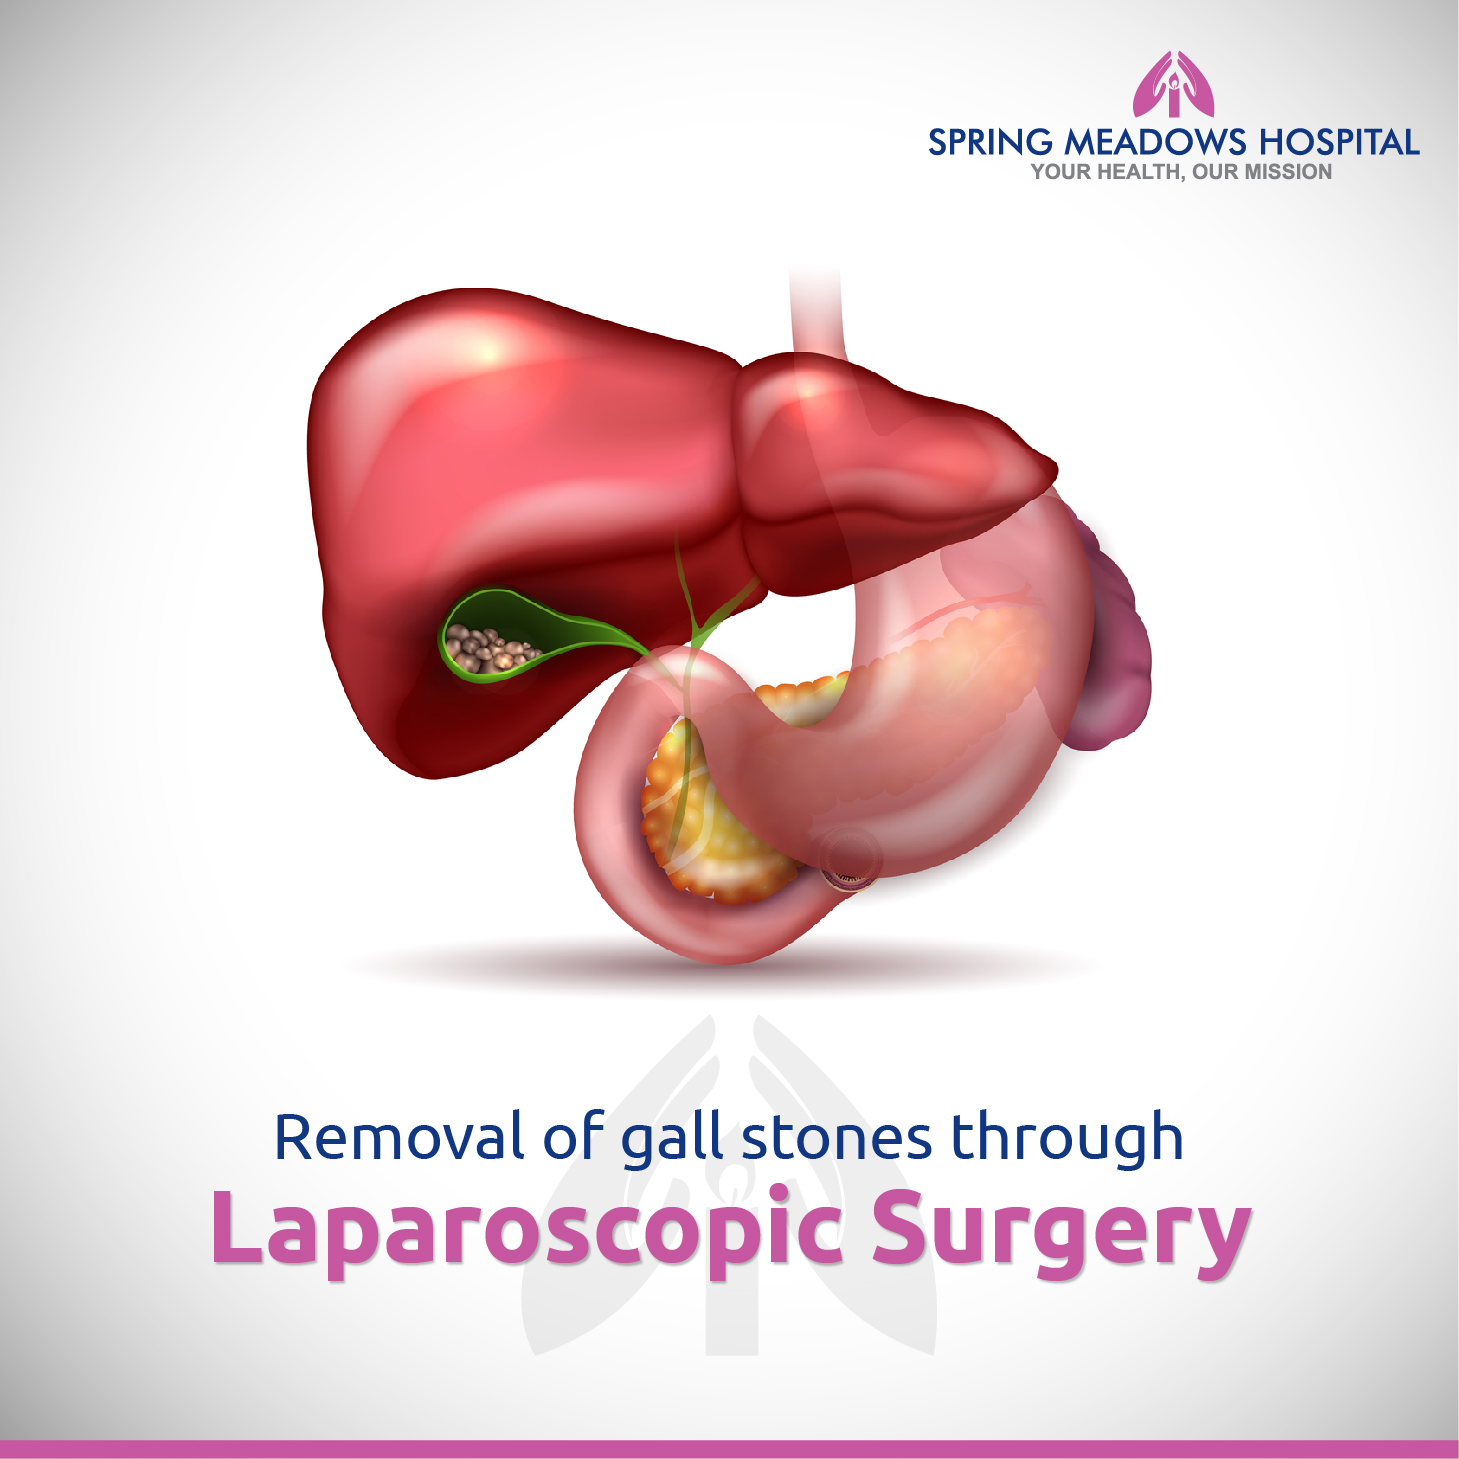 Best Laparoscopic Treatment Surgery Hospital in Delhi-Spring Meadows Hospital